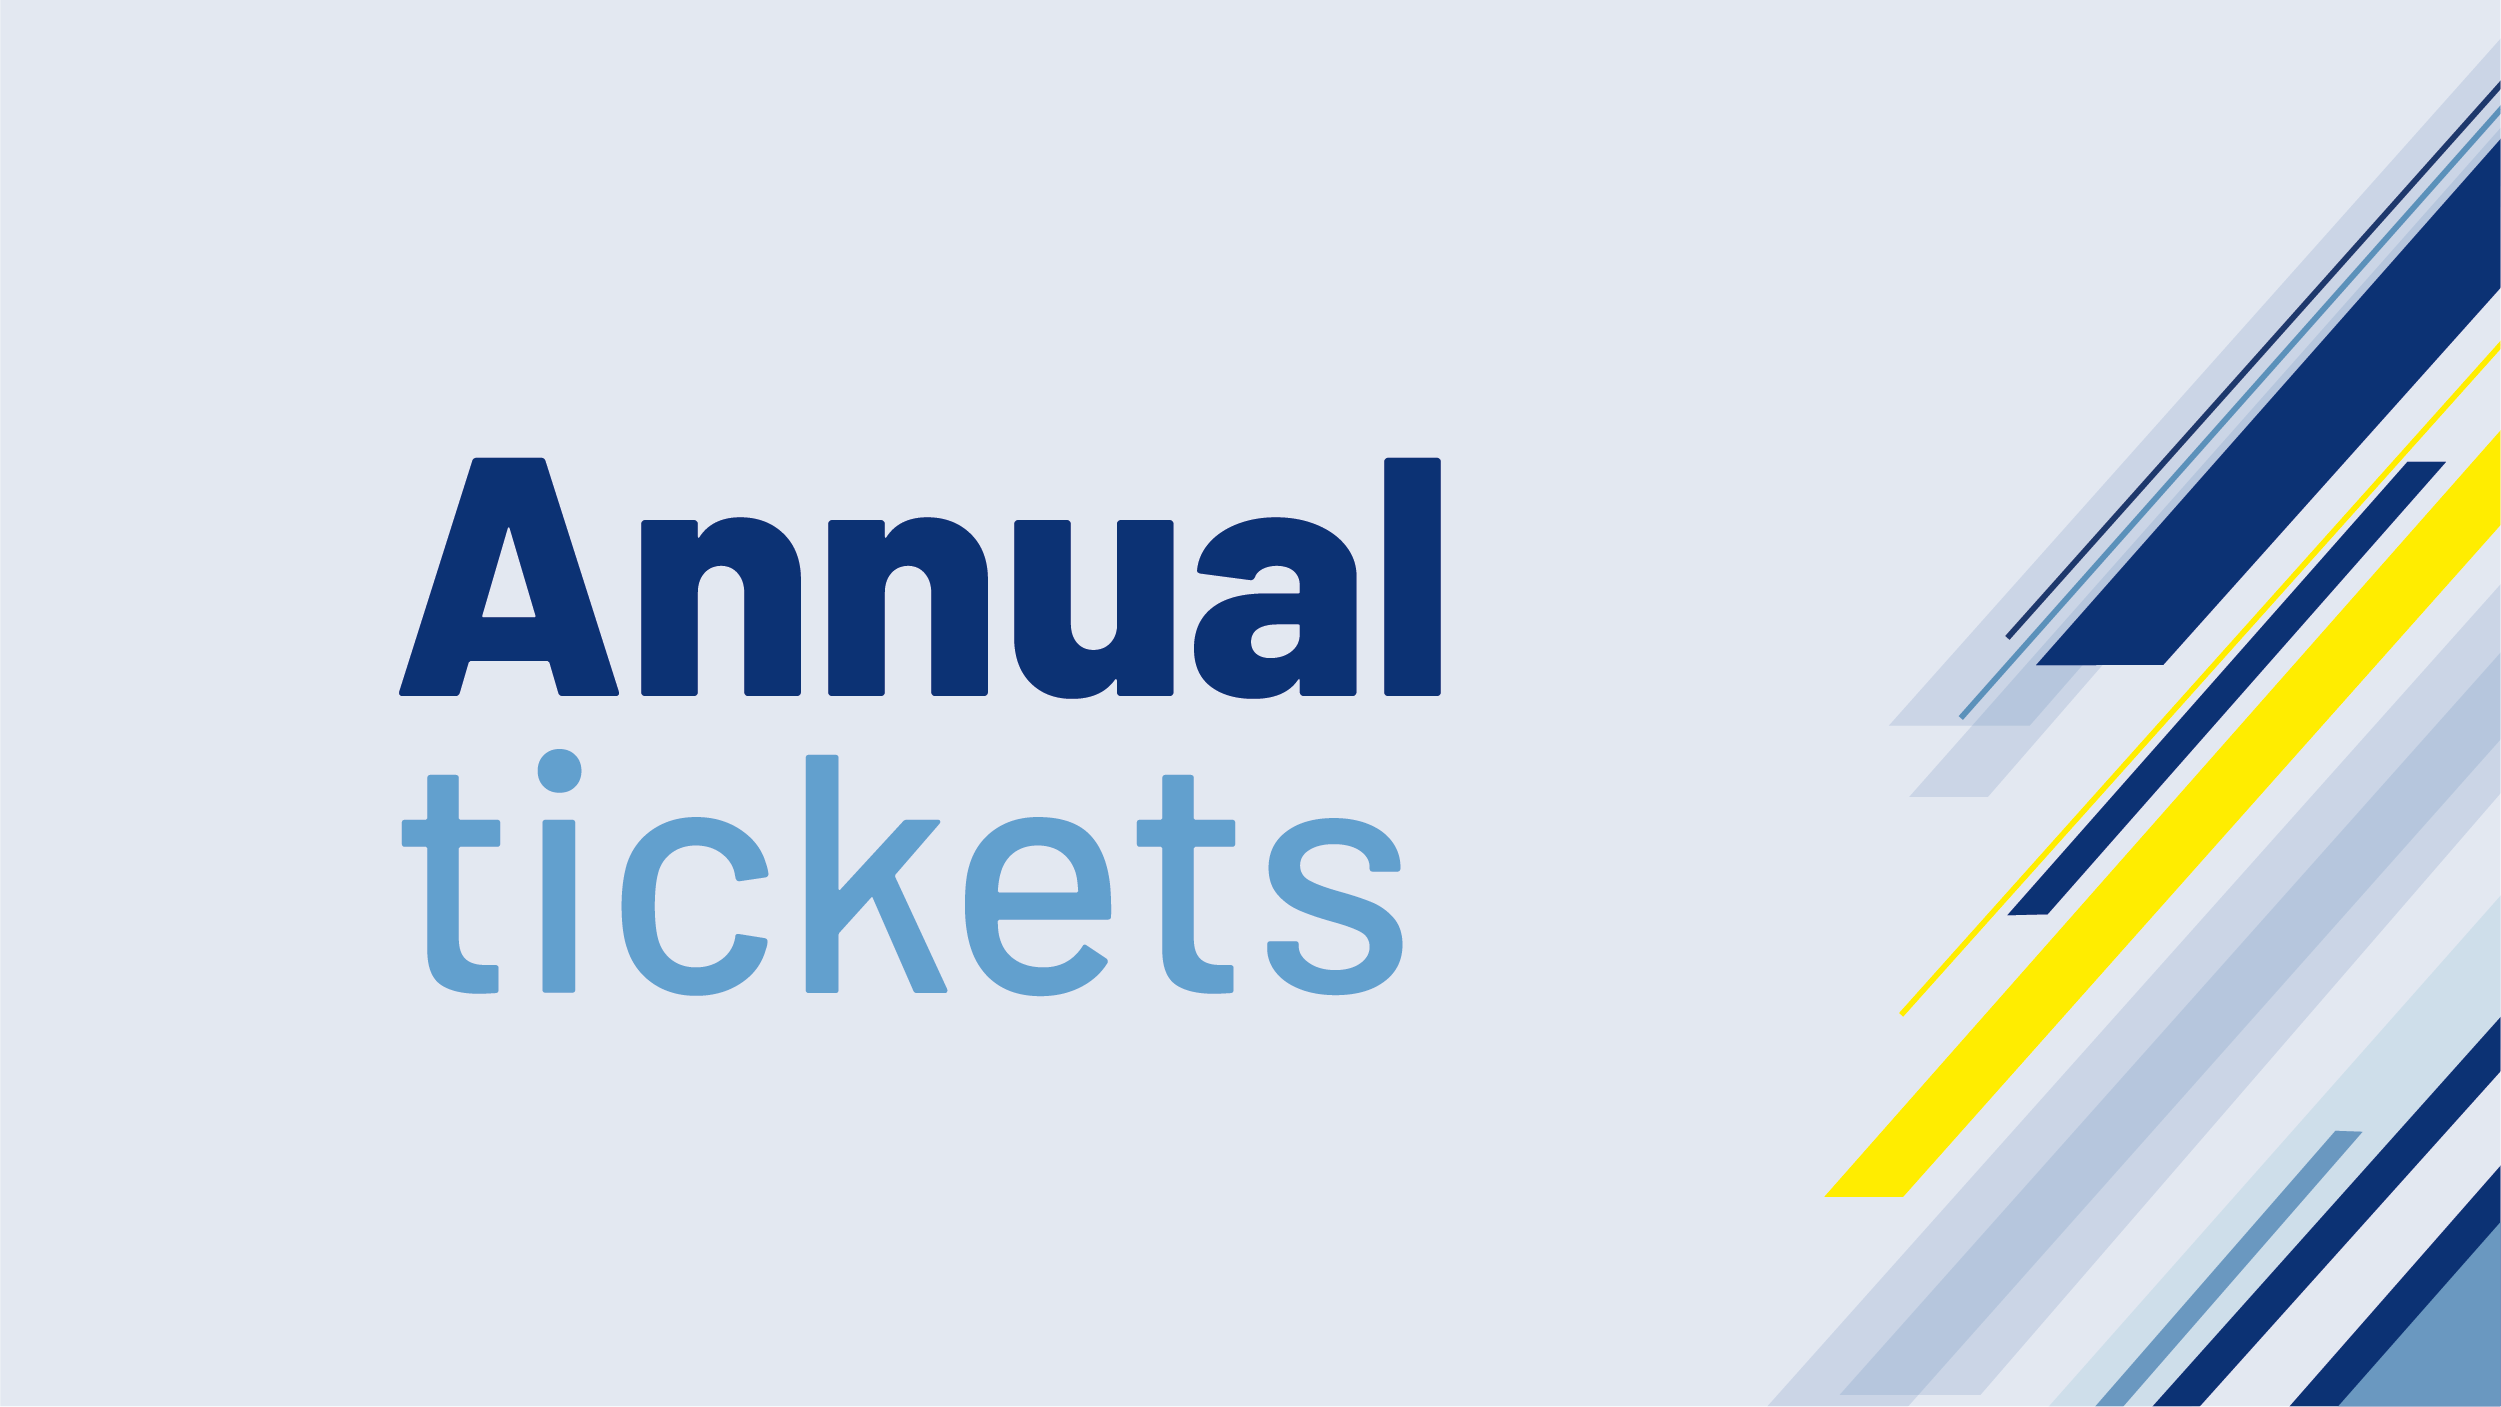 Image displays Annual Tickets